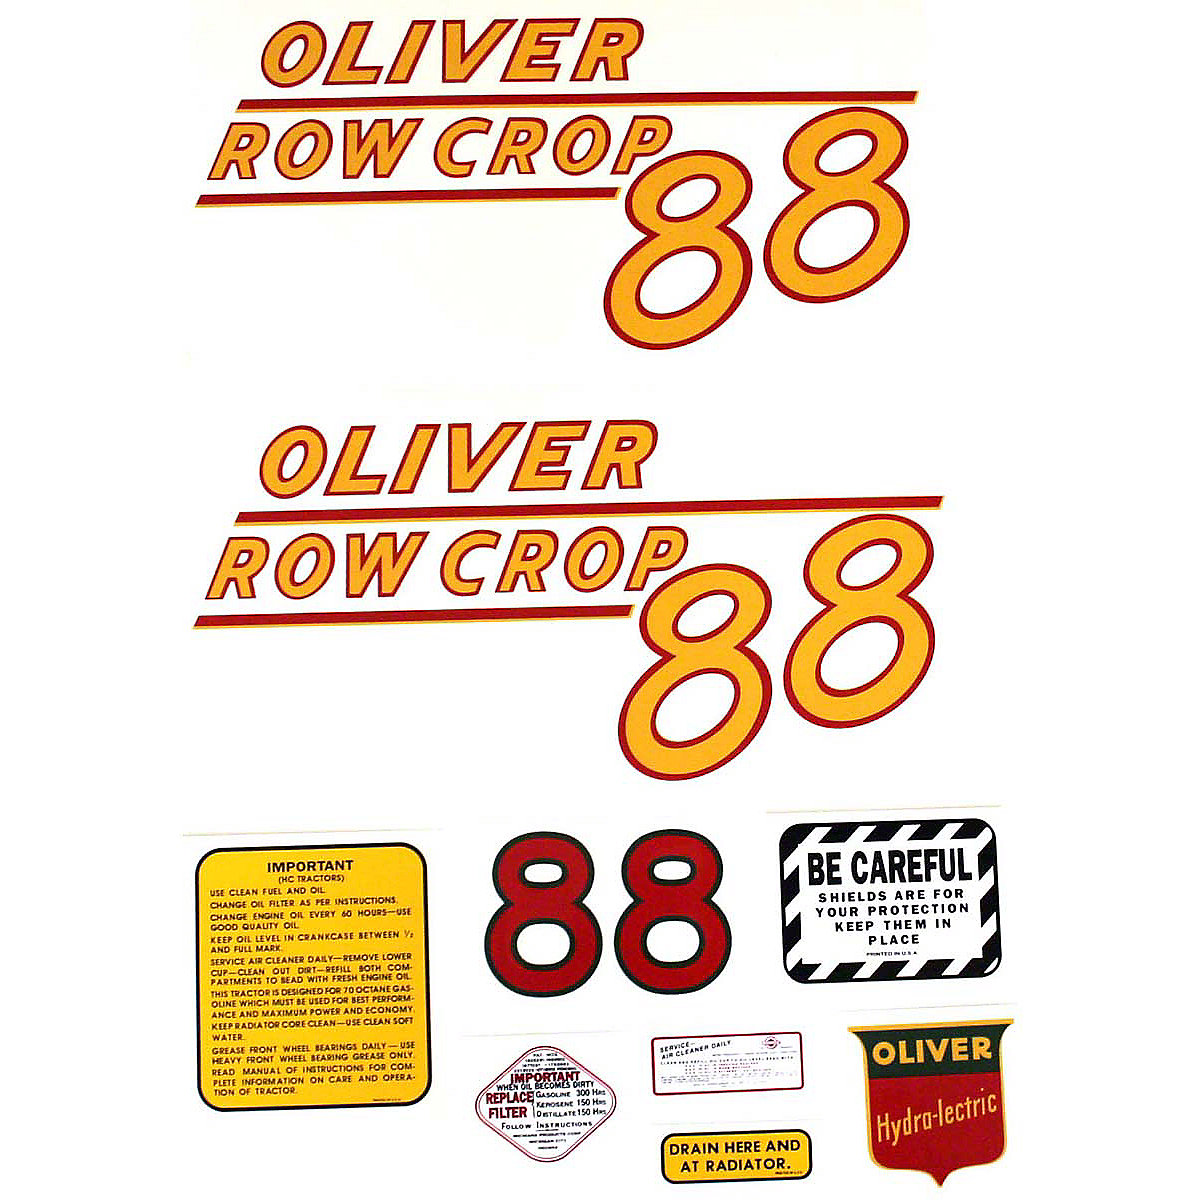 Decal Set For Oliver 88 Row Crop Tractors With Yellow Numbers.